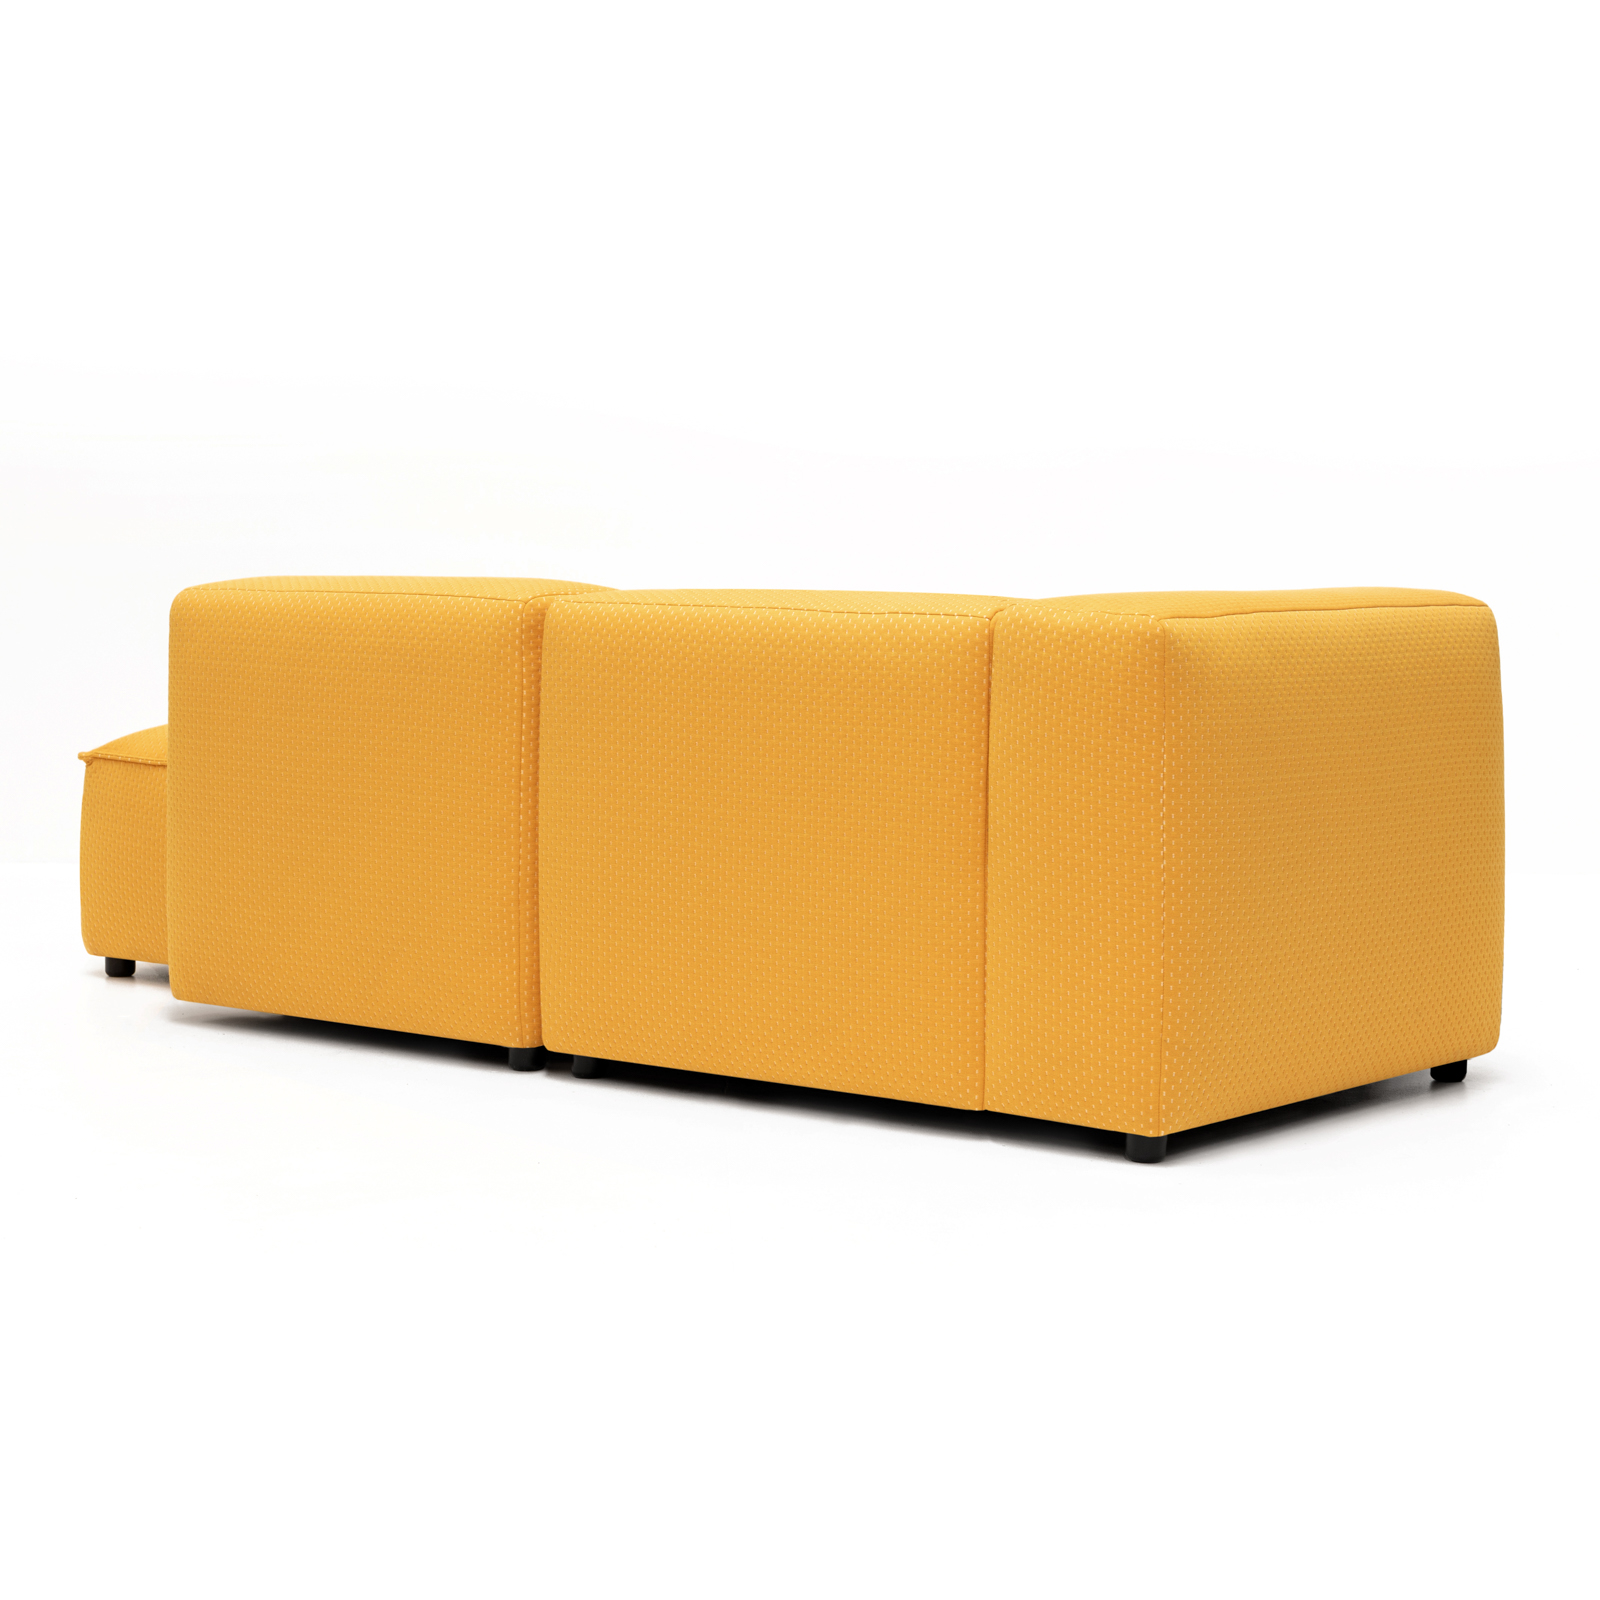 Permanent Future Easey Sofa Chasie Left Zoom Yellow Pf Sf Ea Ch L Zy 45ºl Rear View